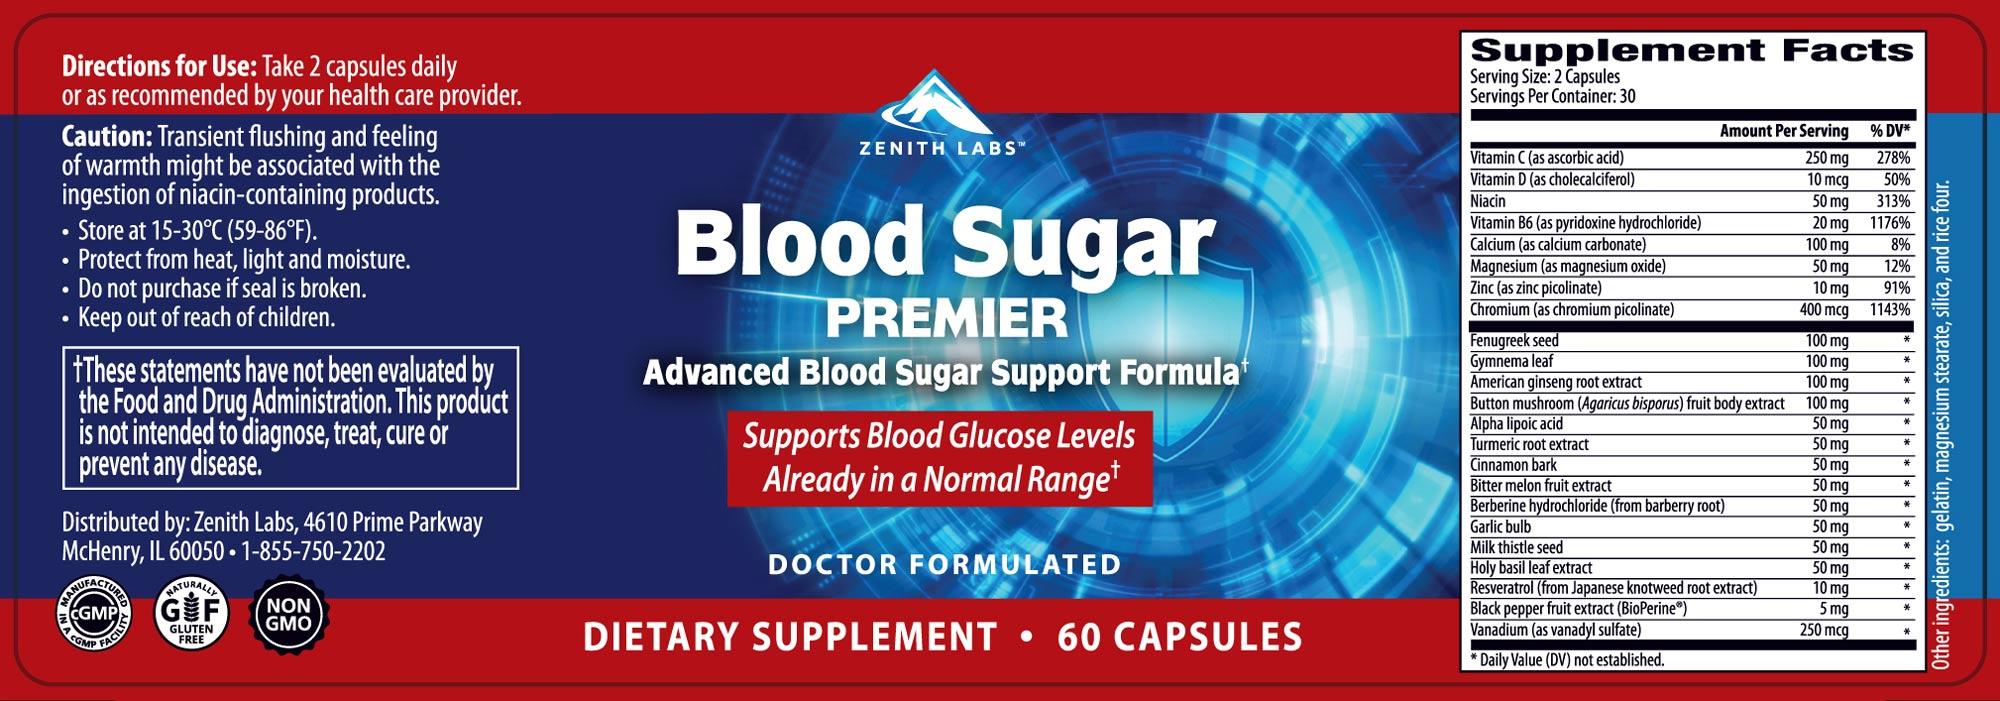 Blood Sugar Premier Label